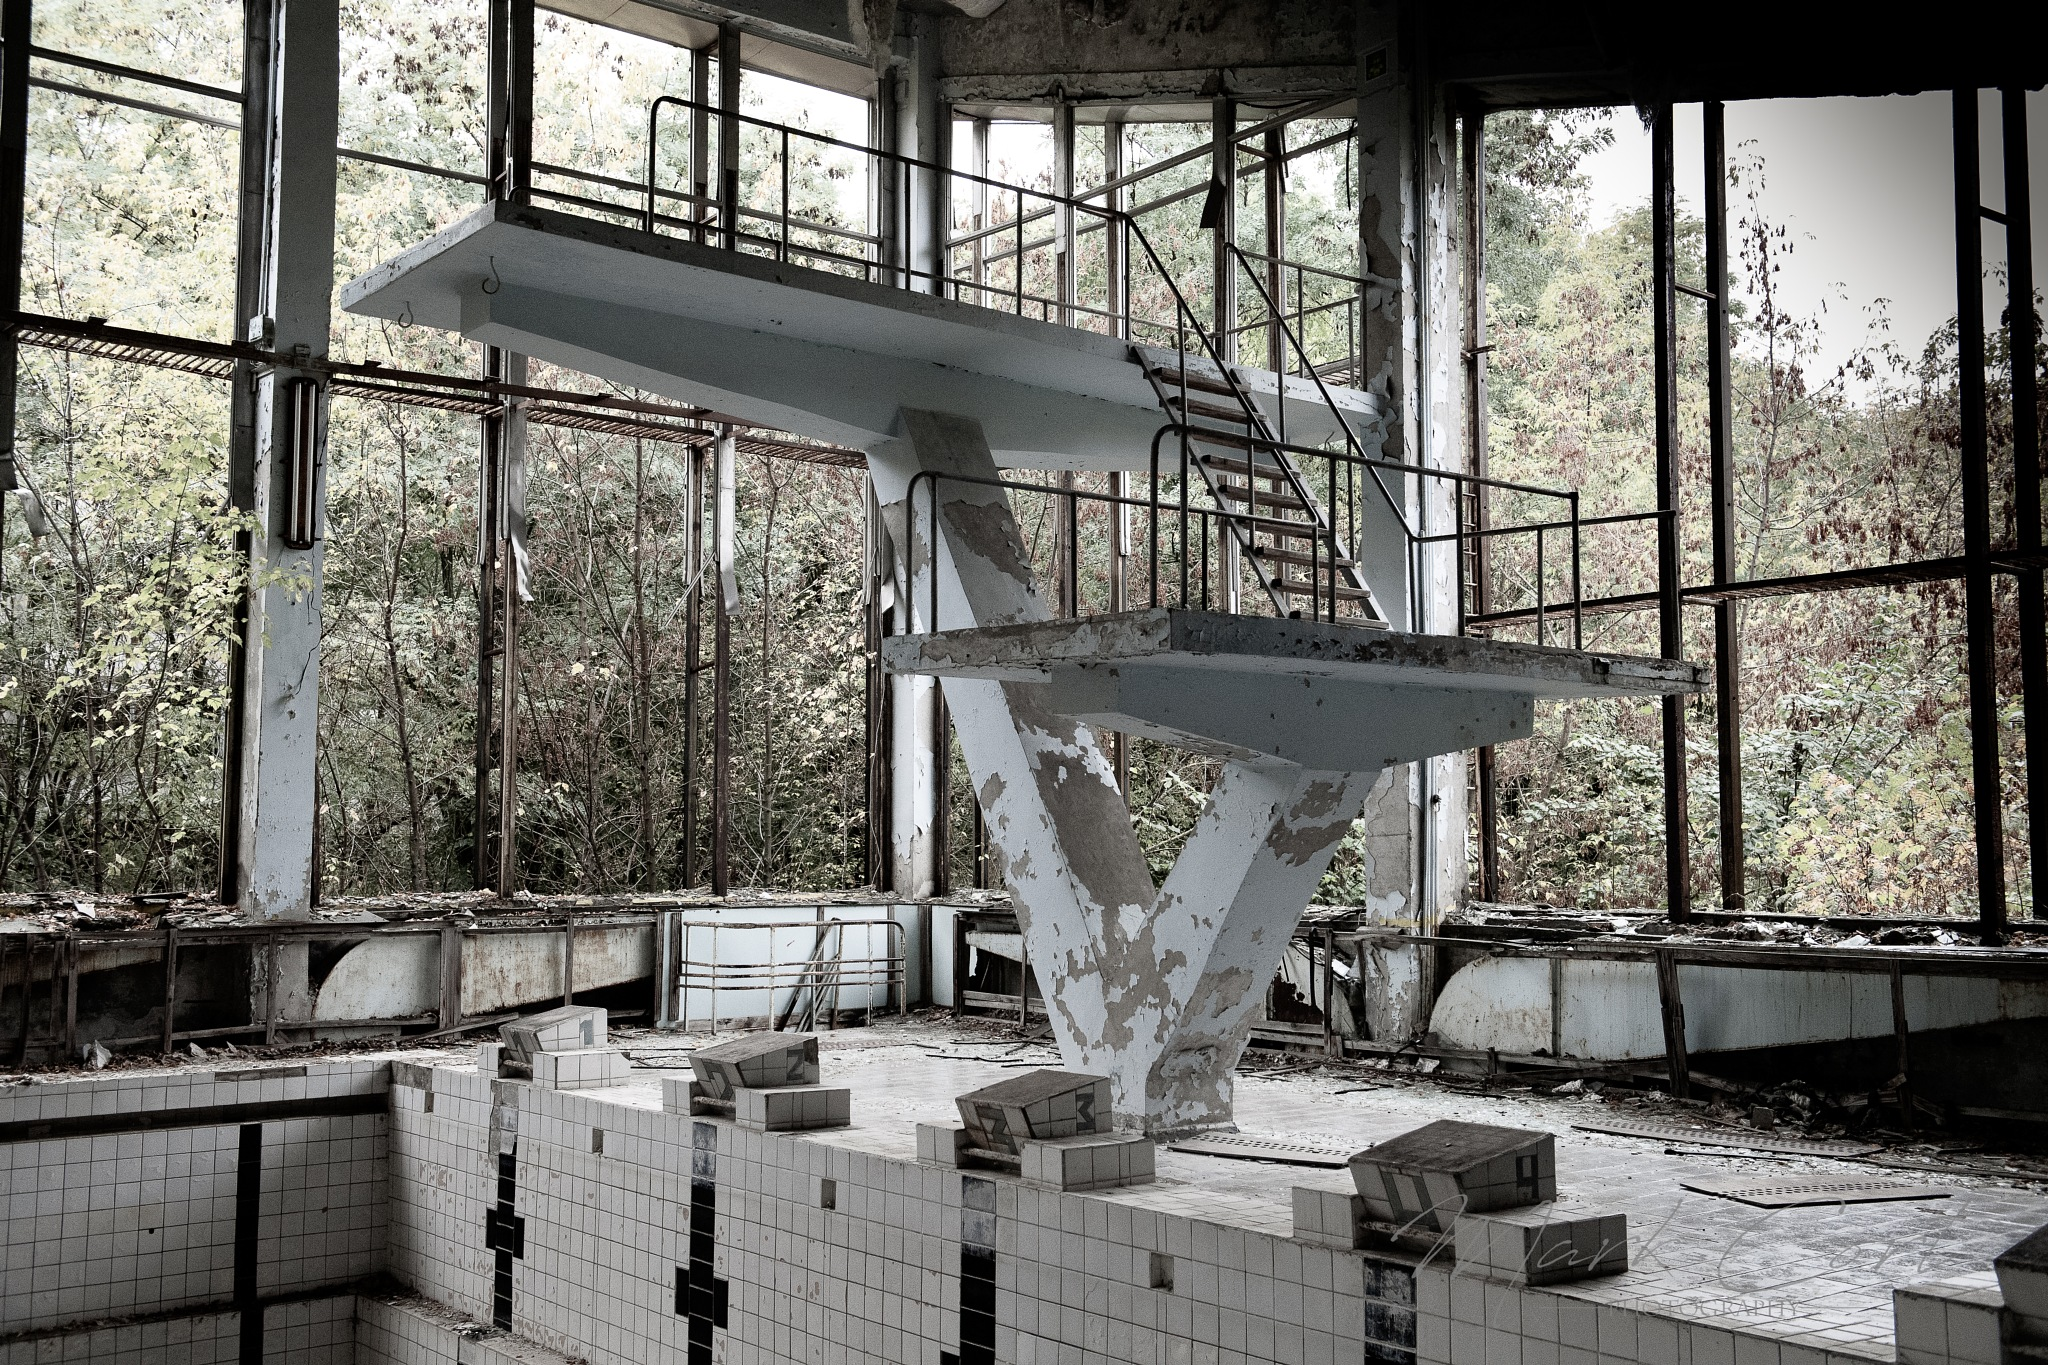 Olympic Pool, Pripyat by Mark Cort